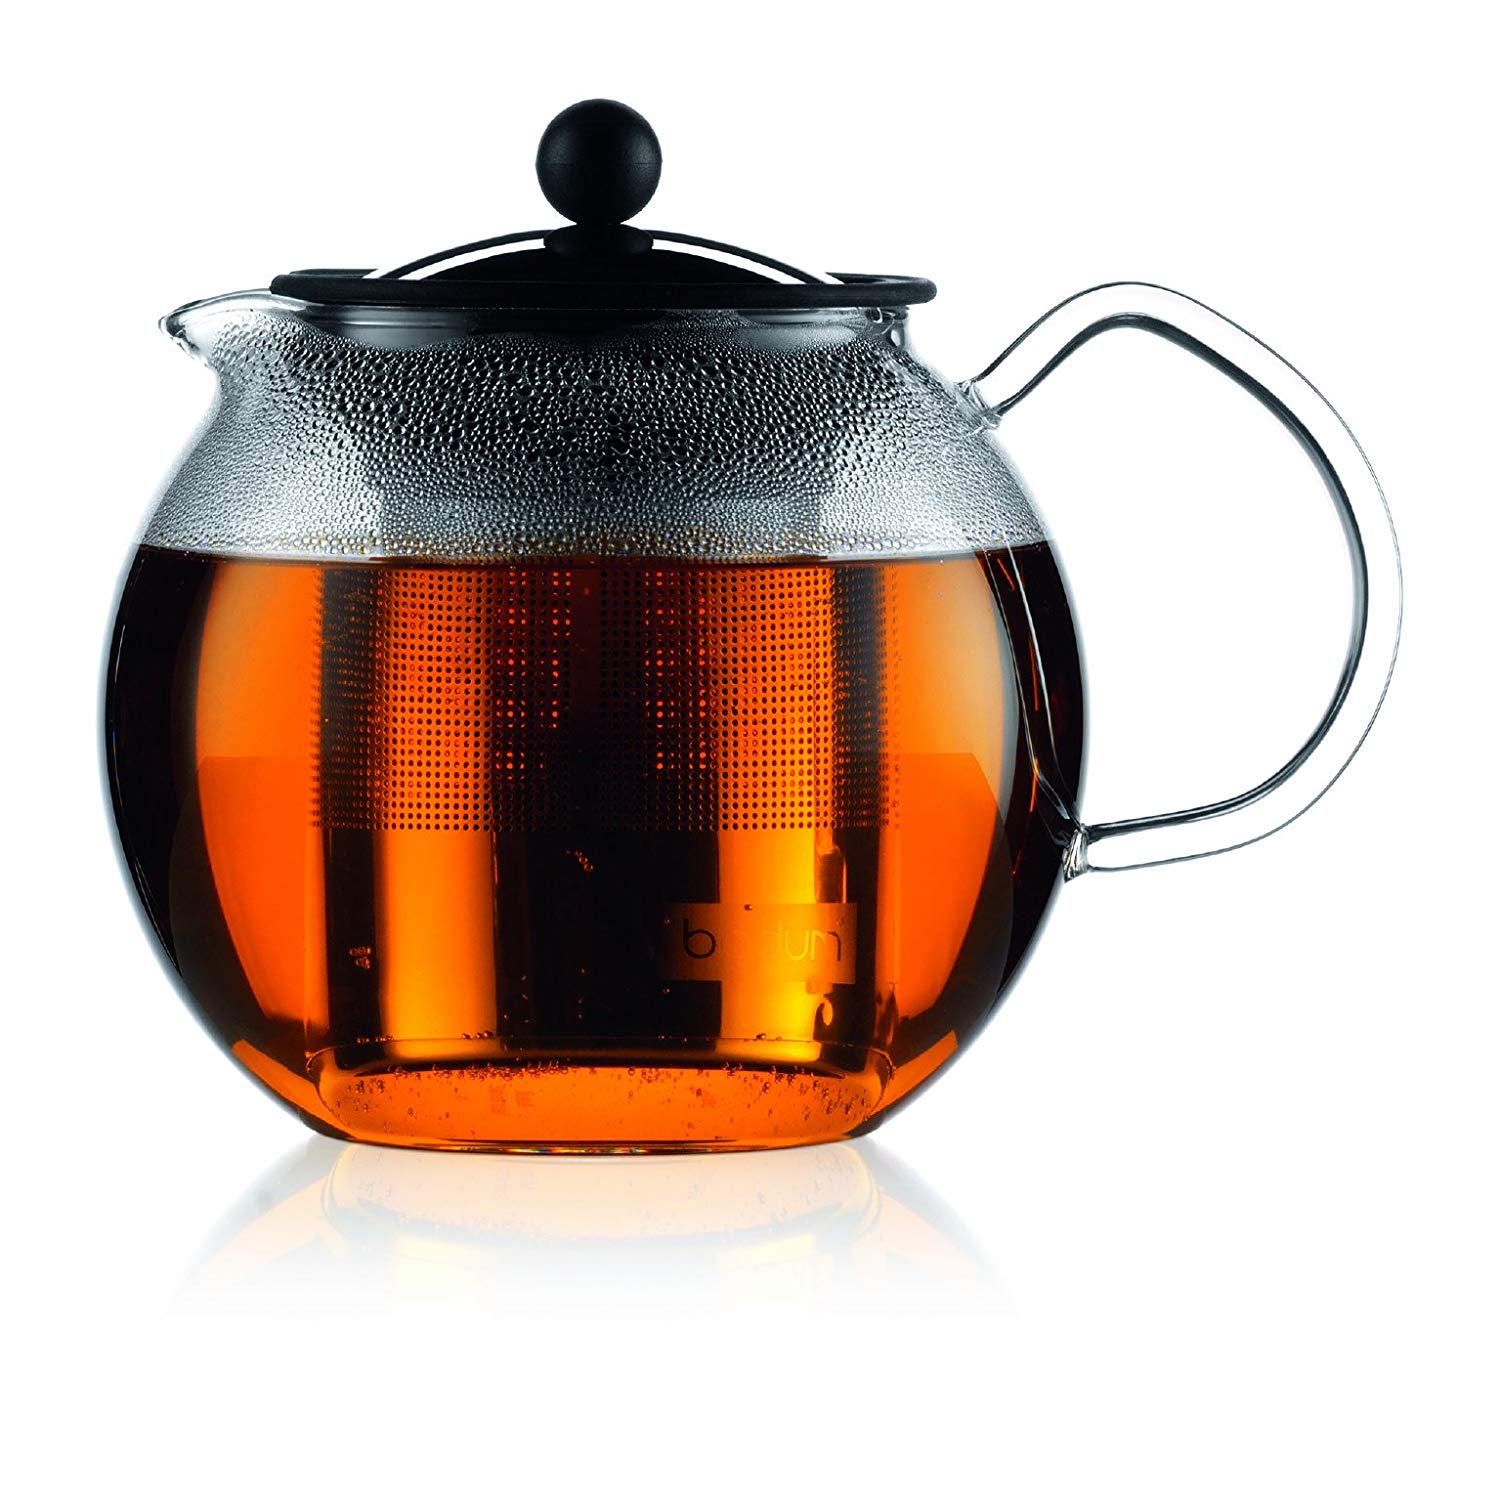 Teapot with infuser basket for loose tea